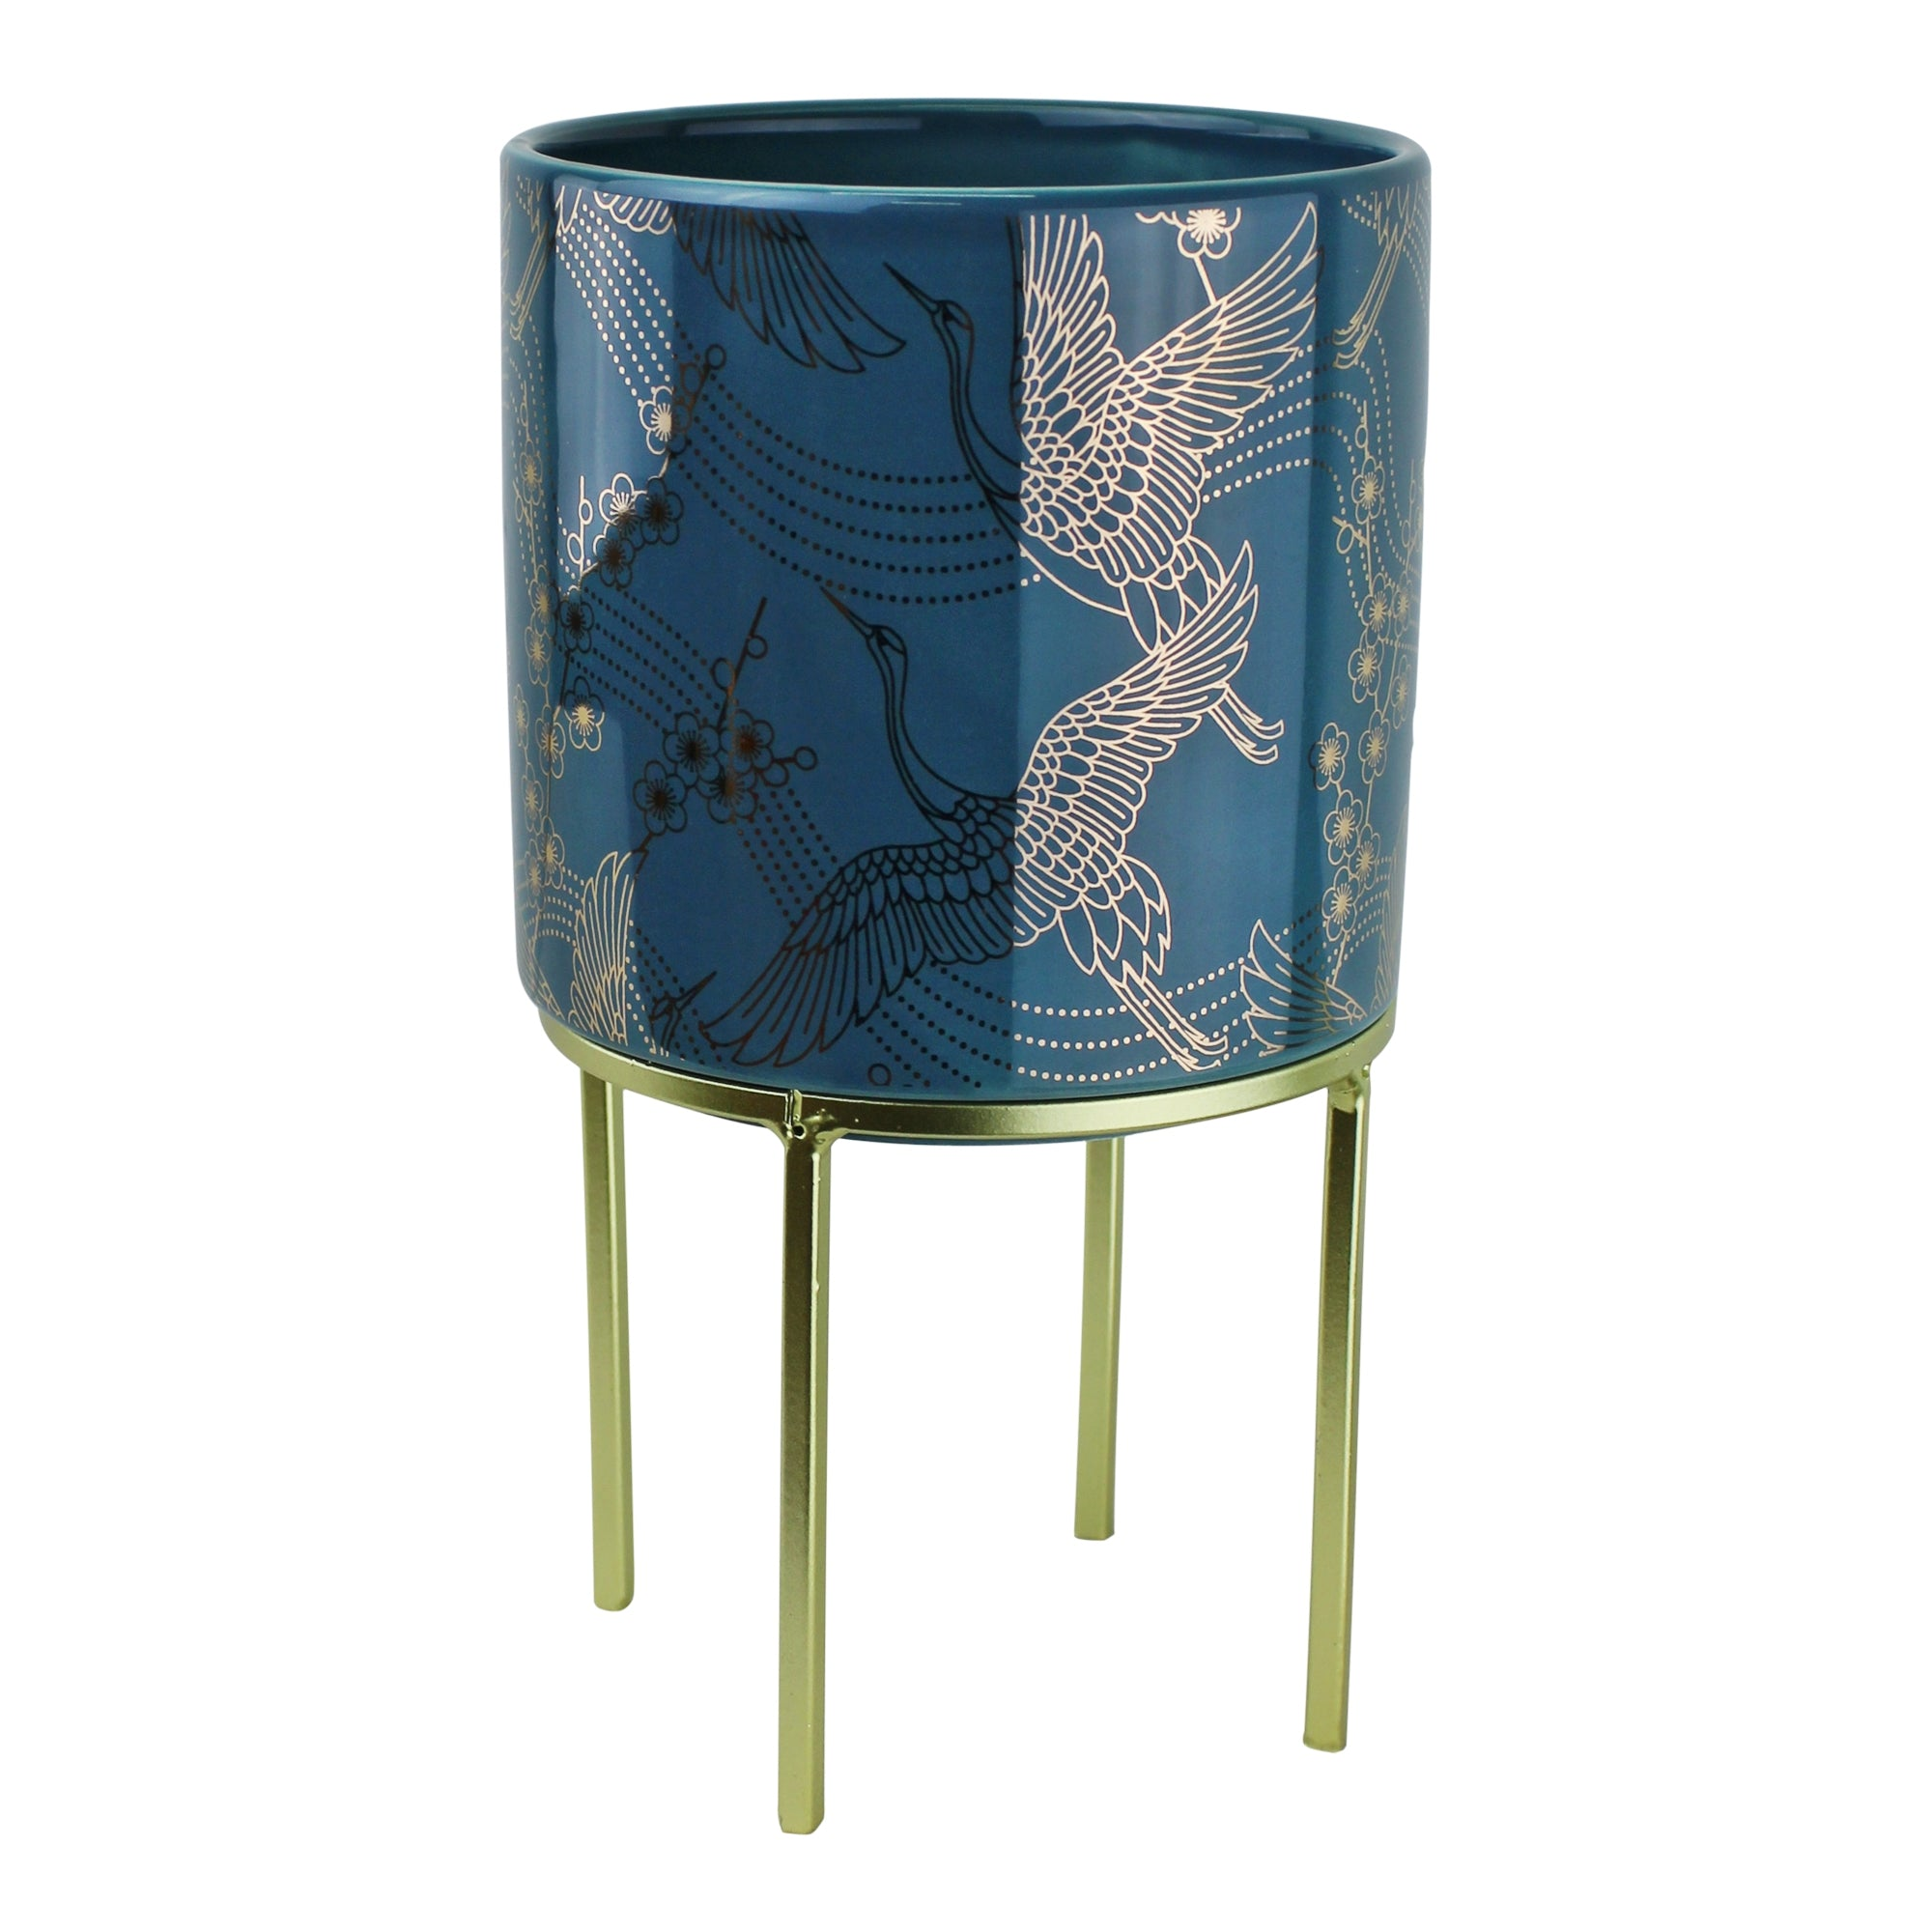 Small Eastern Planter  With Stand Featuring Cranes Design